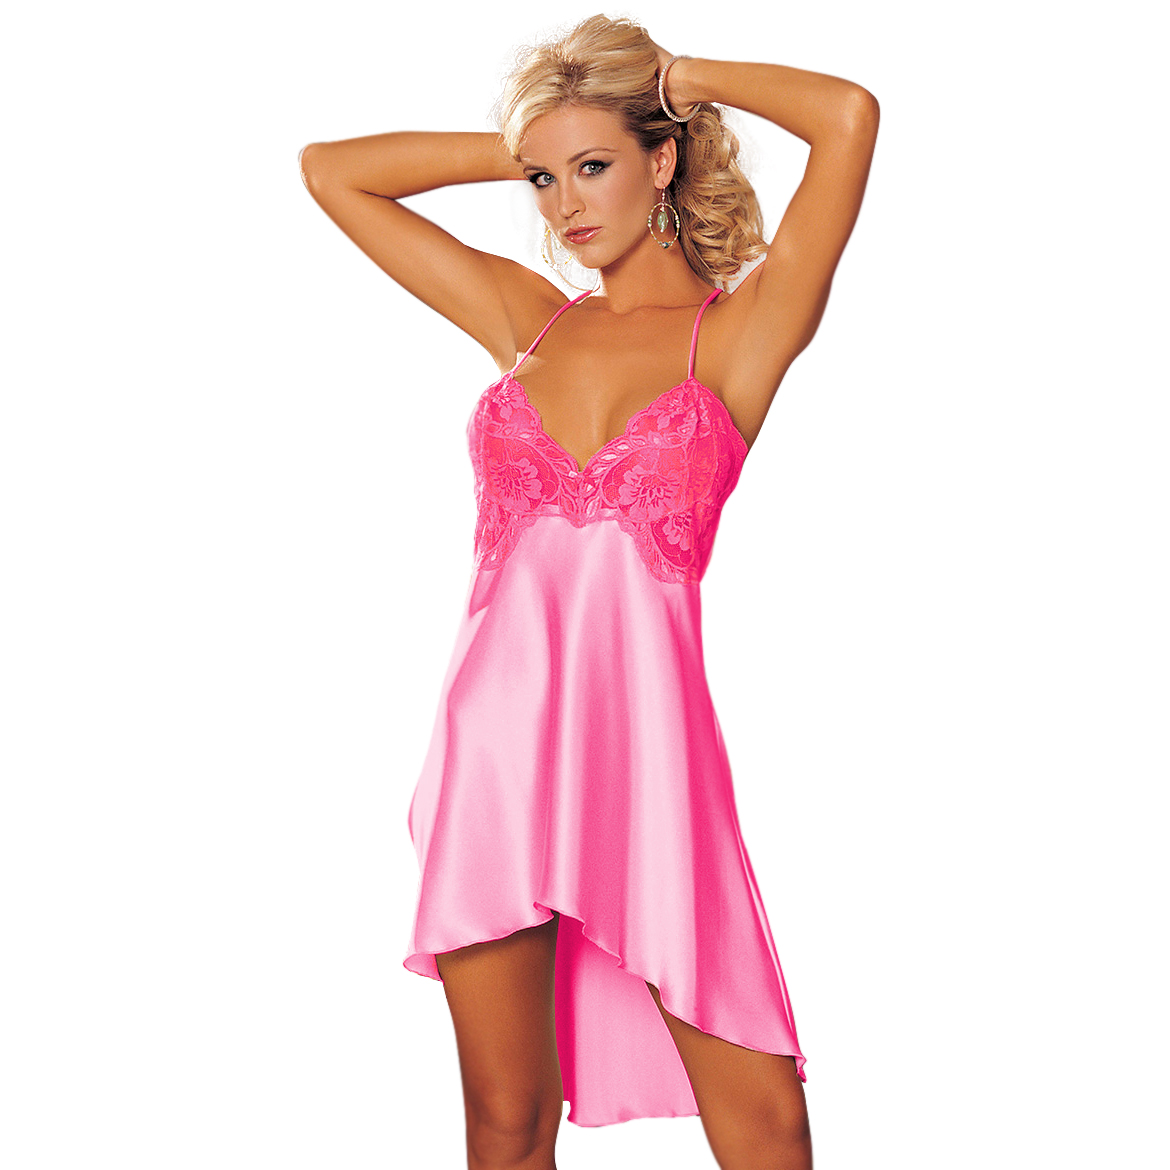 Lingerie Gowns and Robes – Fashion design images